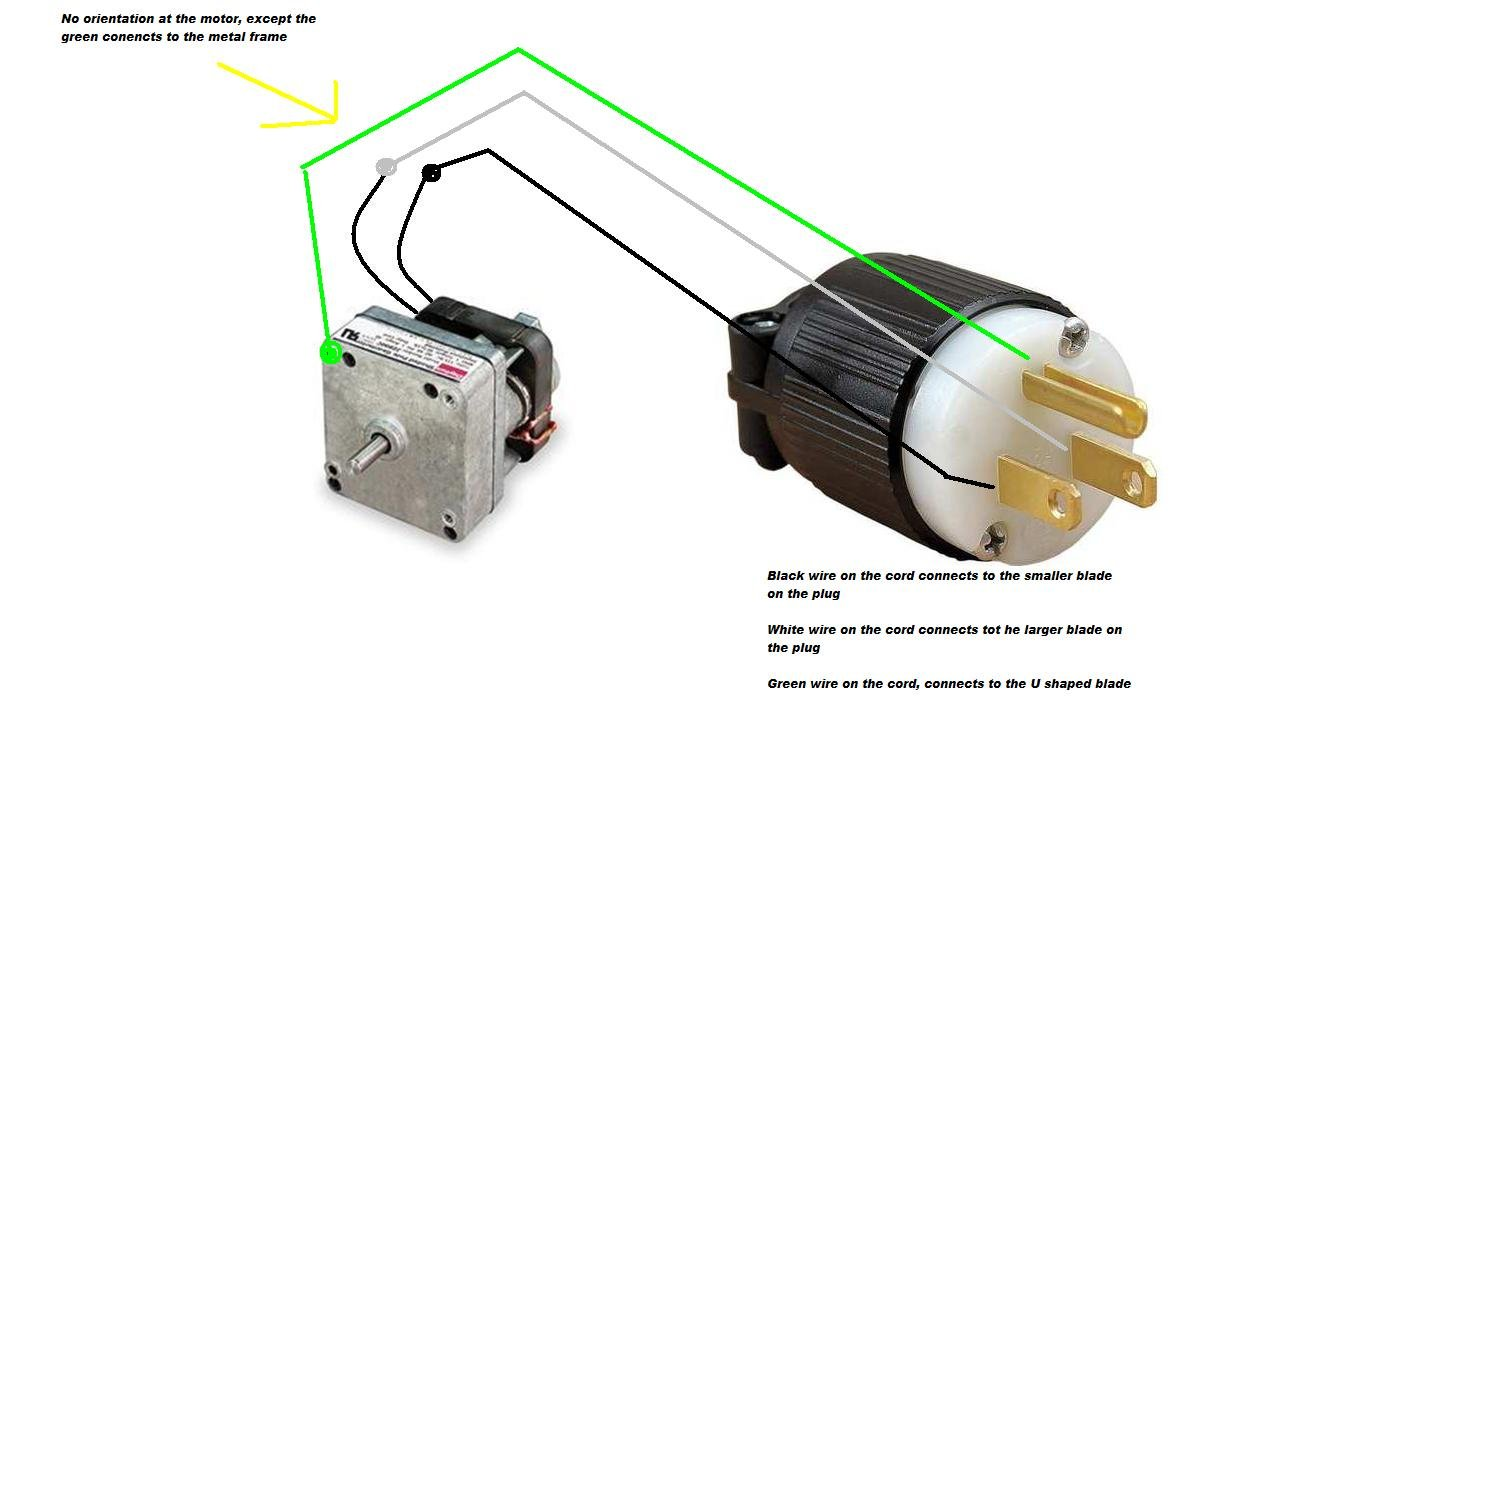 dayton gear motor wiring diagram dayton image wiring diagram dayton reversible motor the wiring diagram on dayton gear motor wiring diagram